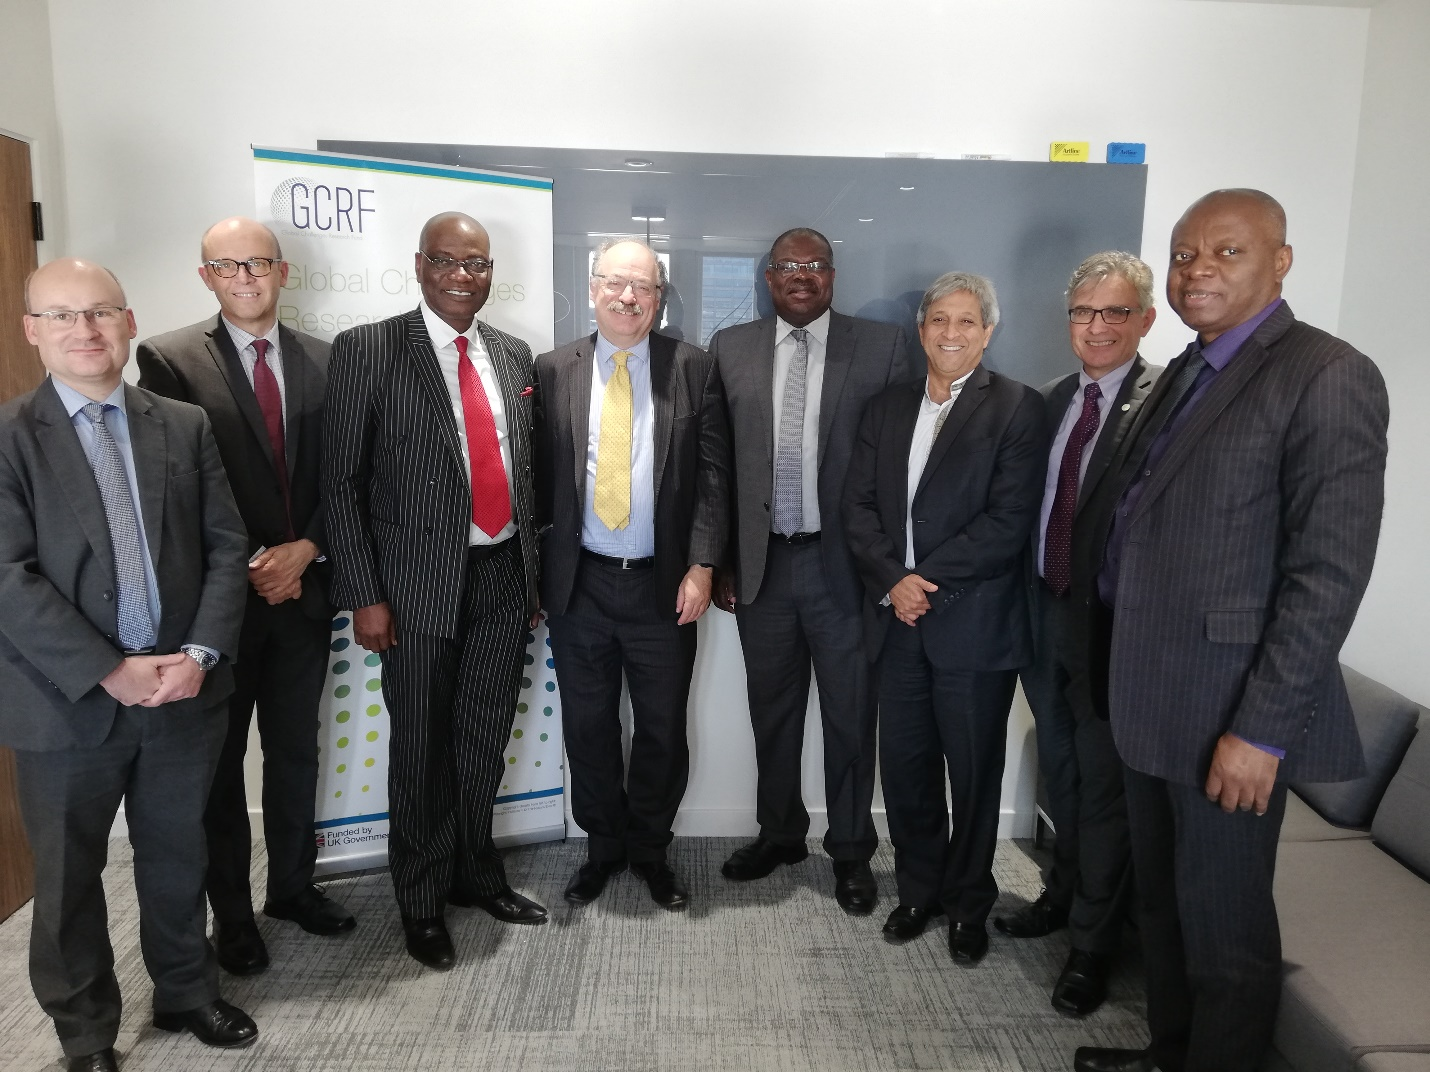 Picture of ARUA delegation with Sir Mark Walport, (Centre) CEO of UKRI